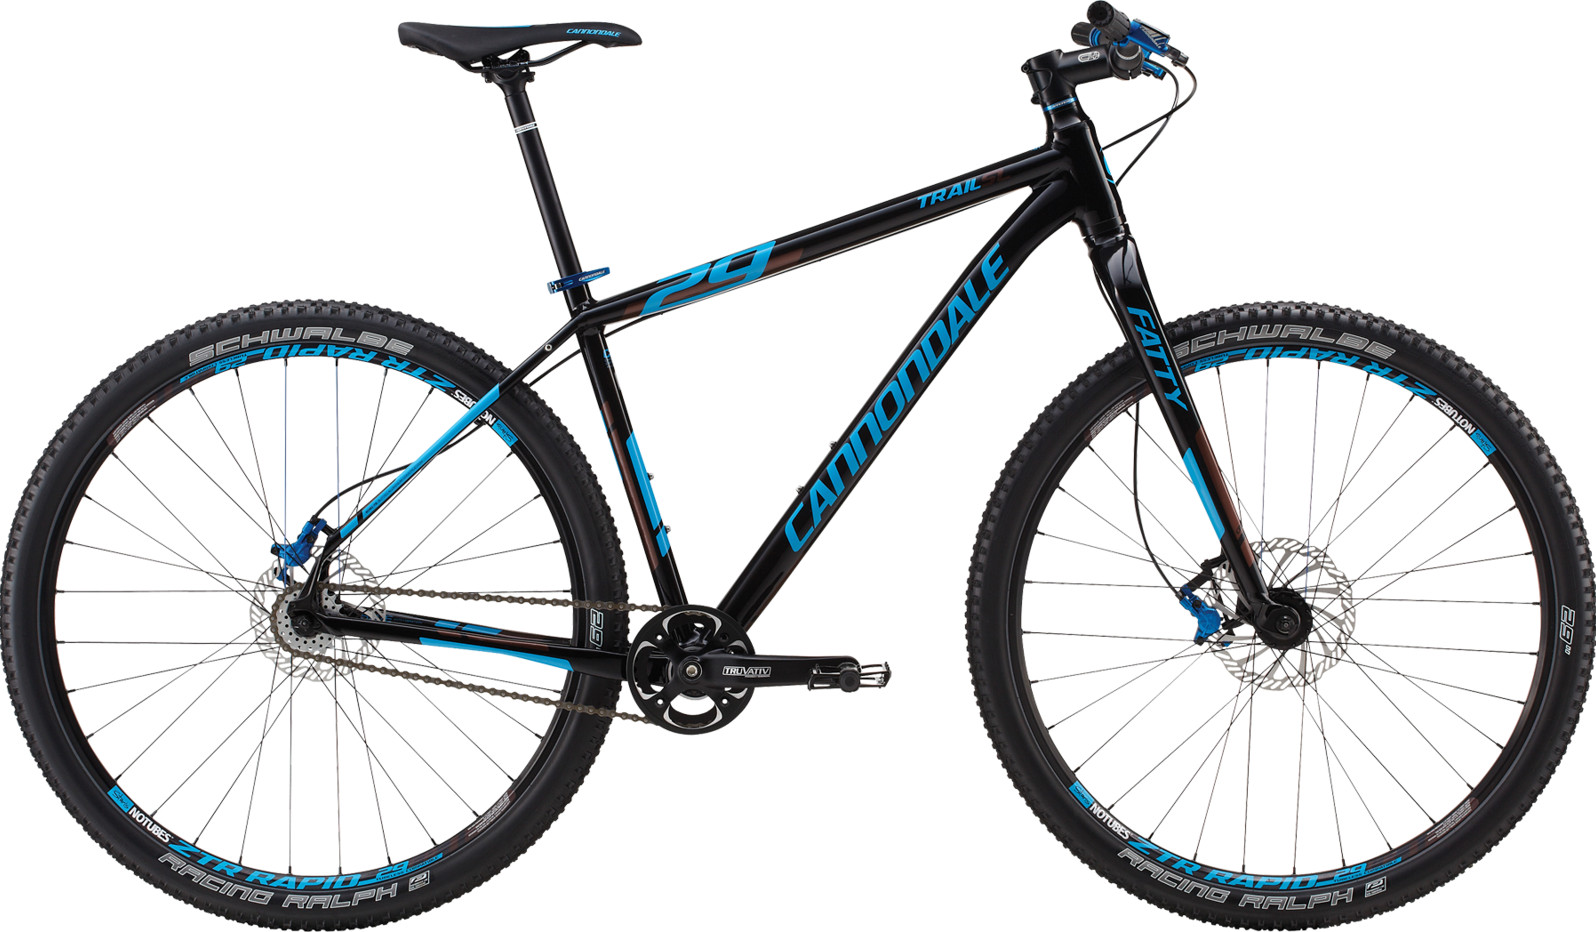 bike - 2014 Cannondale Trail SL 29 SS